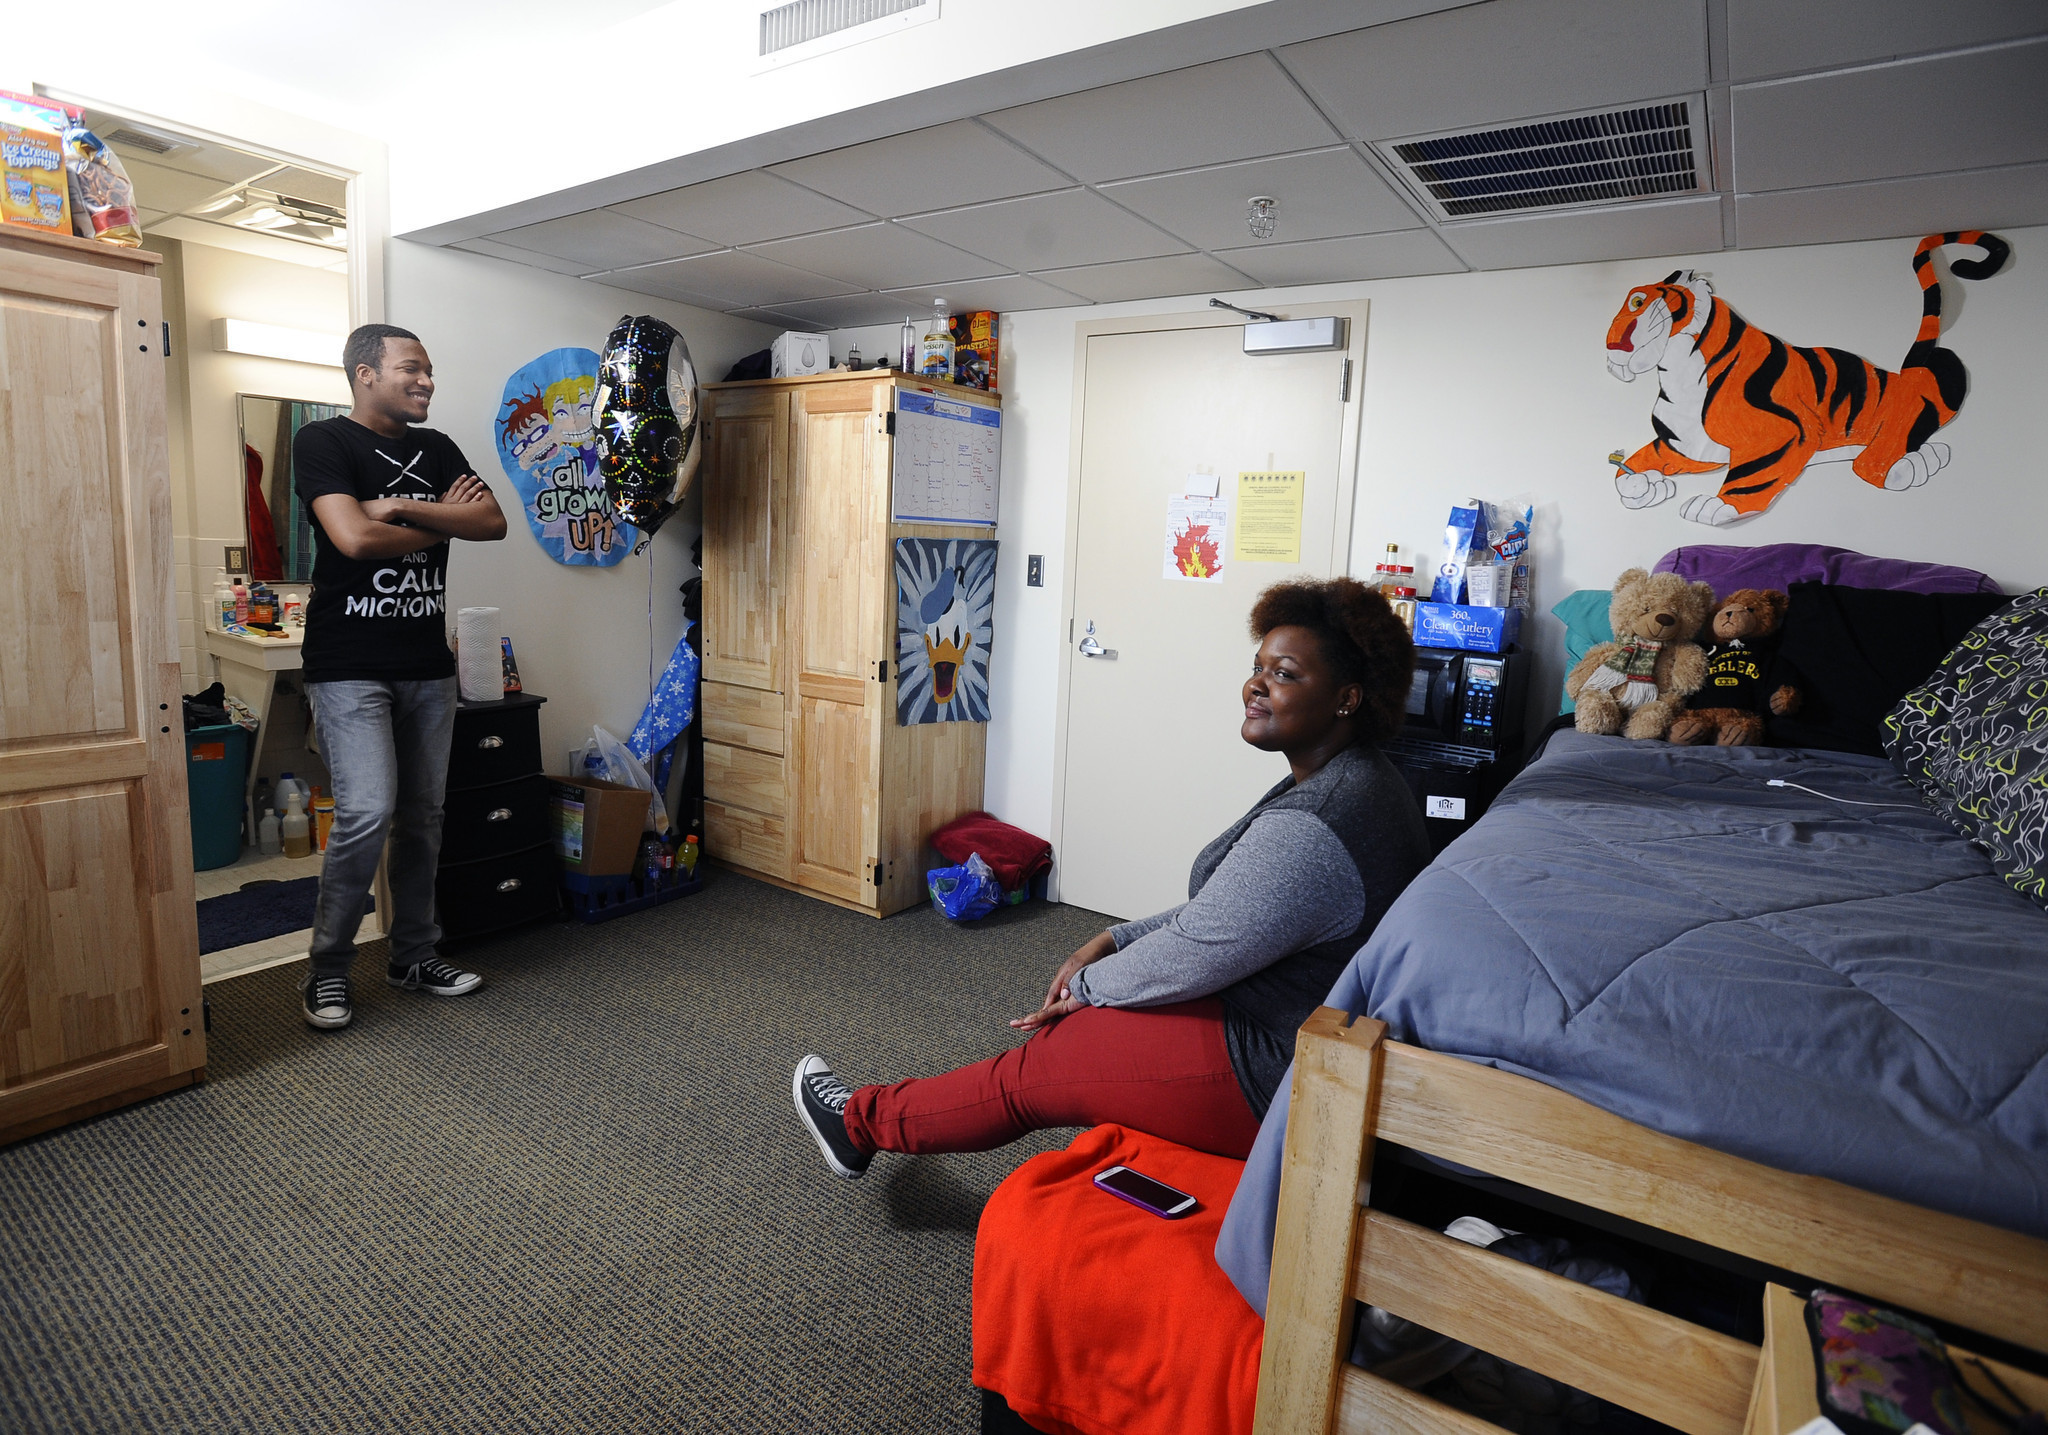 College Dorm Lodging Png